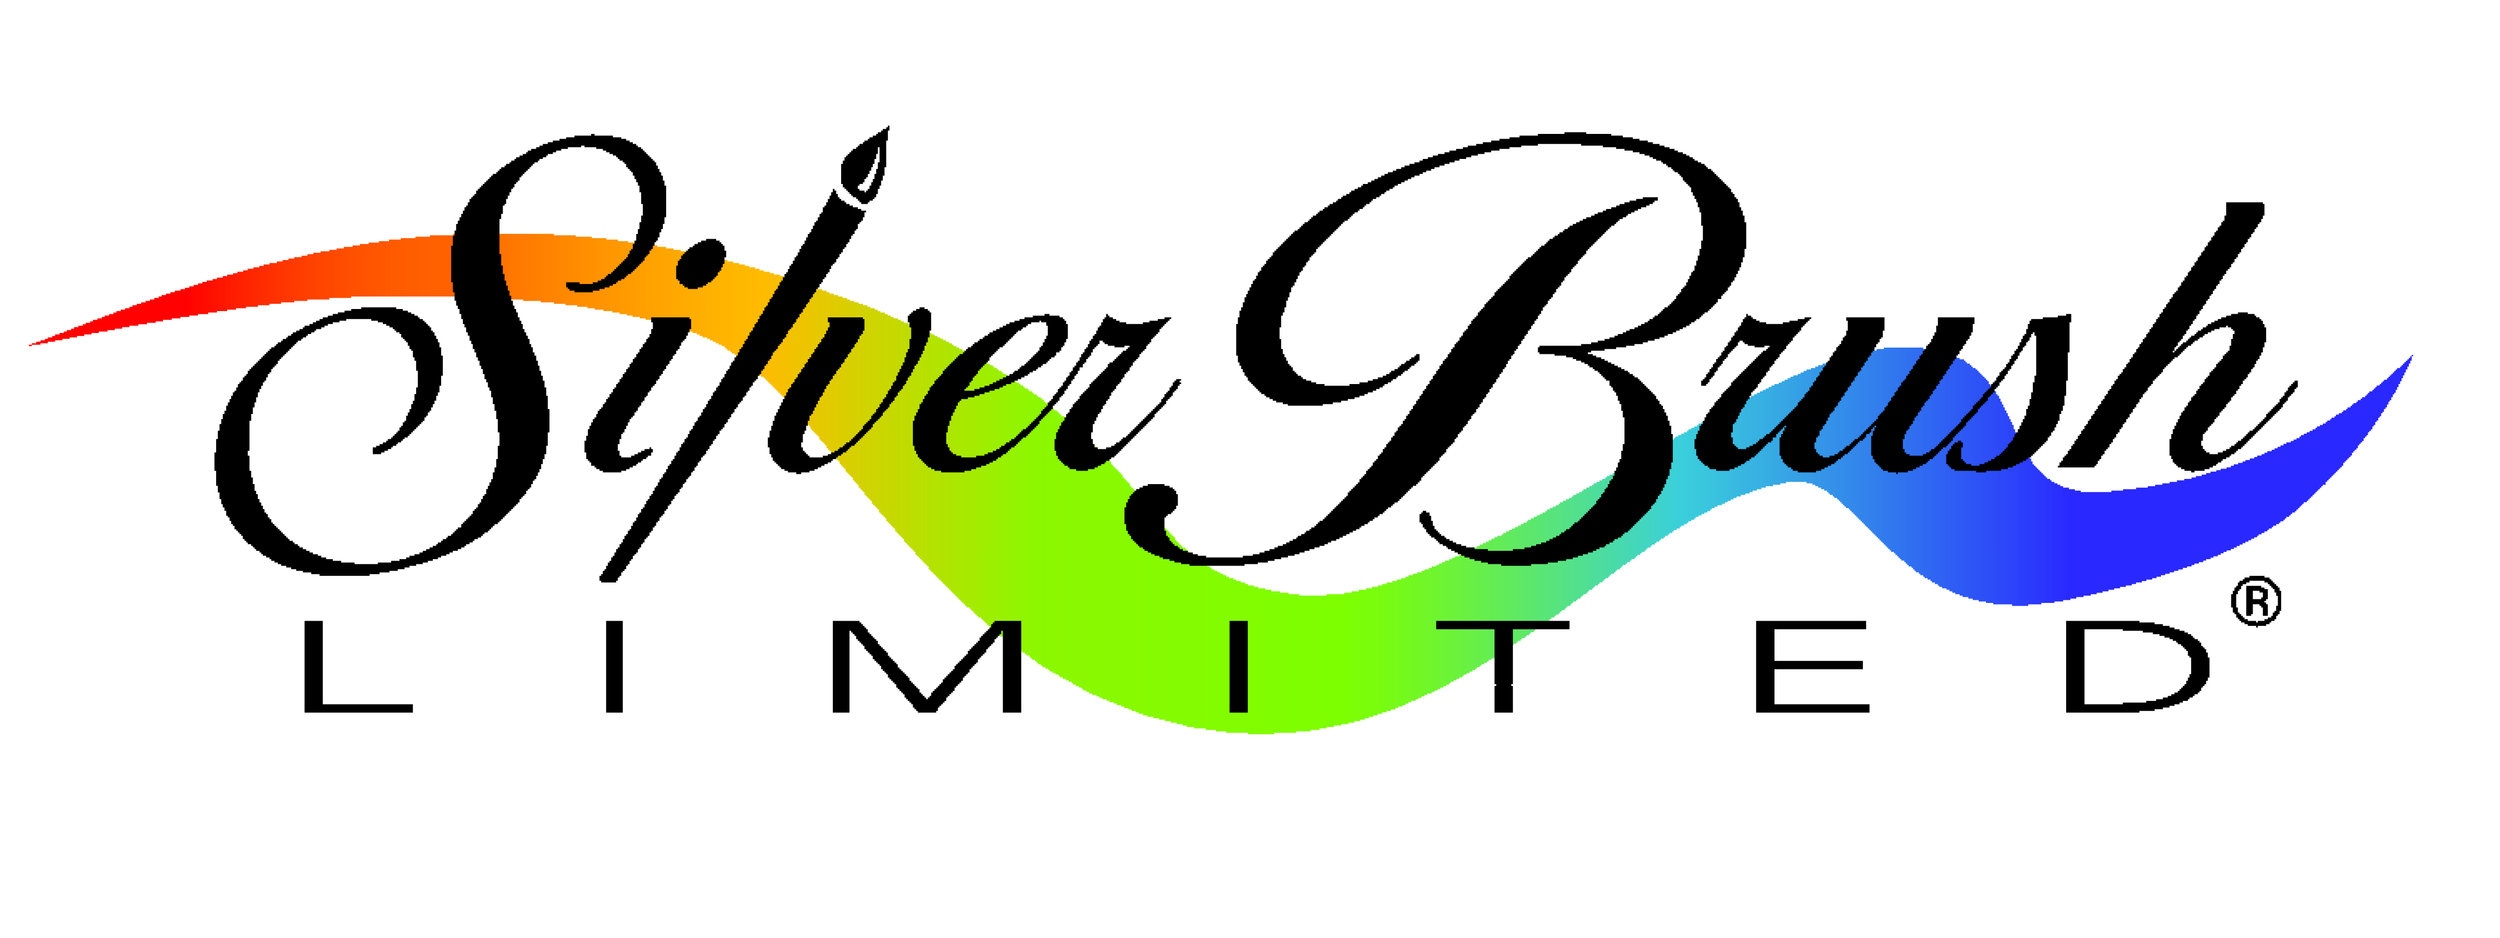 Silver Brush Limited -